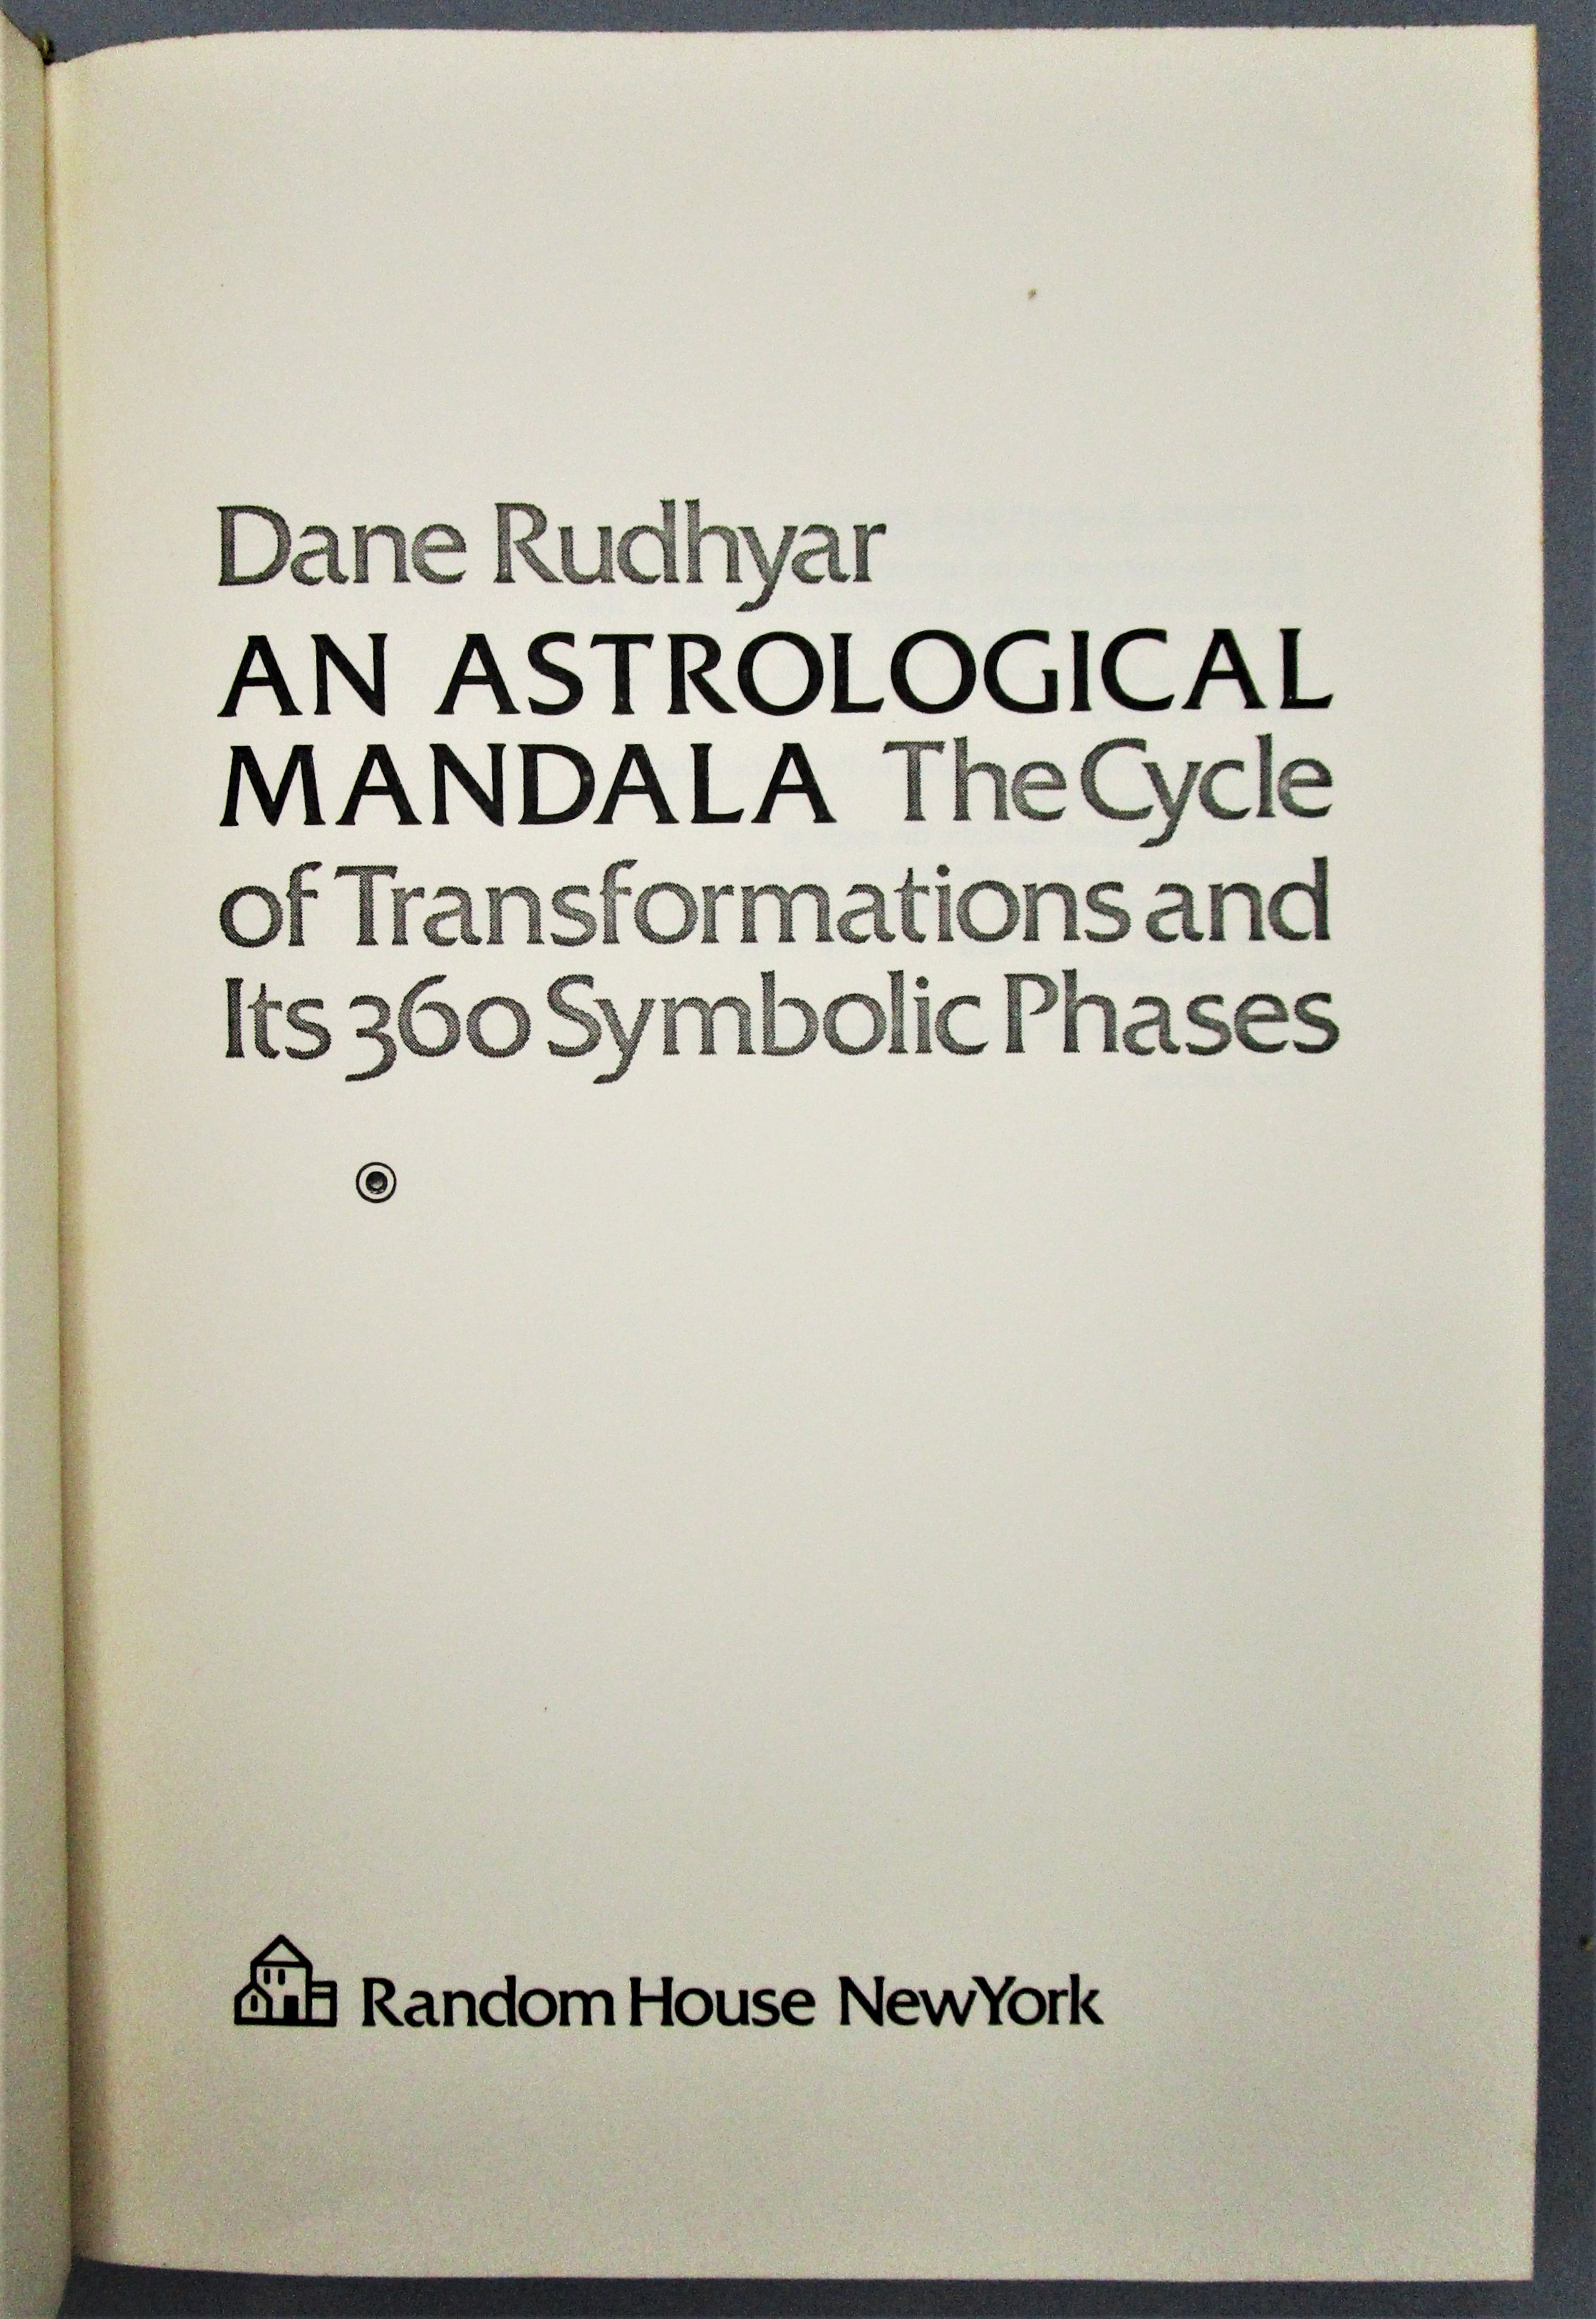 AN ASTROLOGICAL MANDALA, by Dane Rudhyar - 1973 [1st Ed]